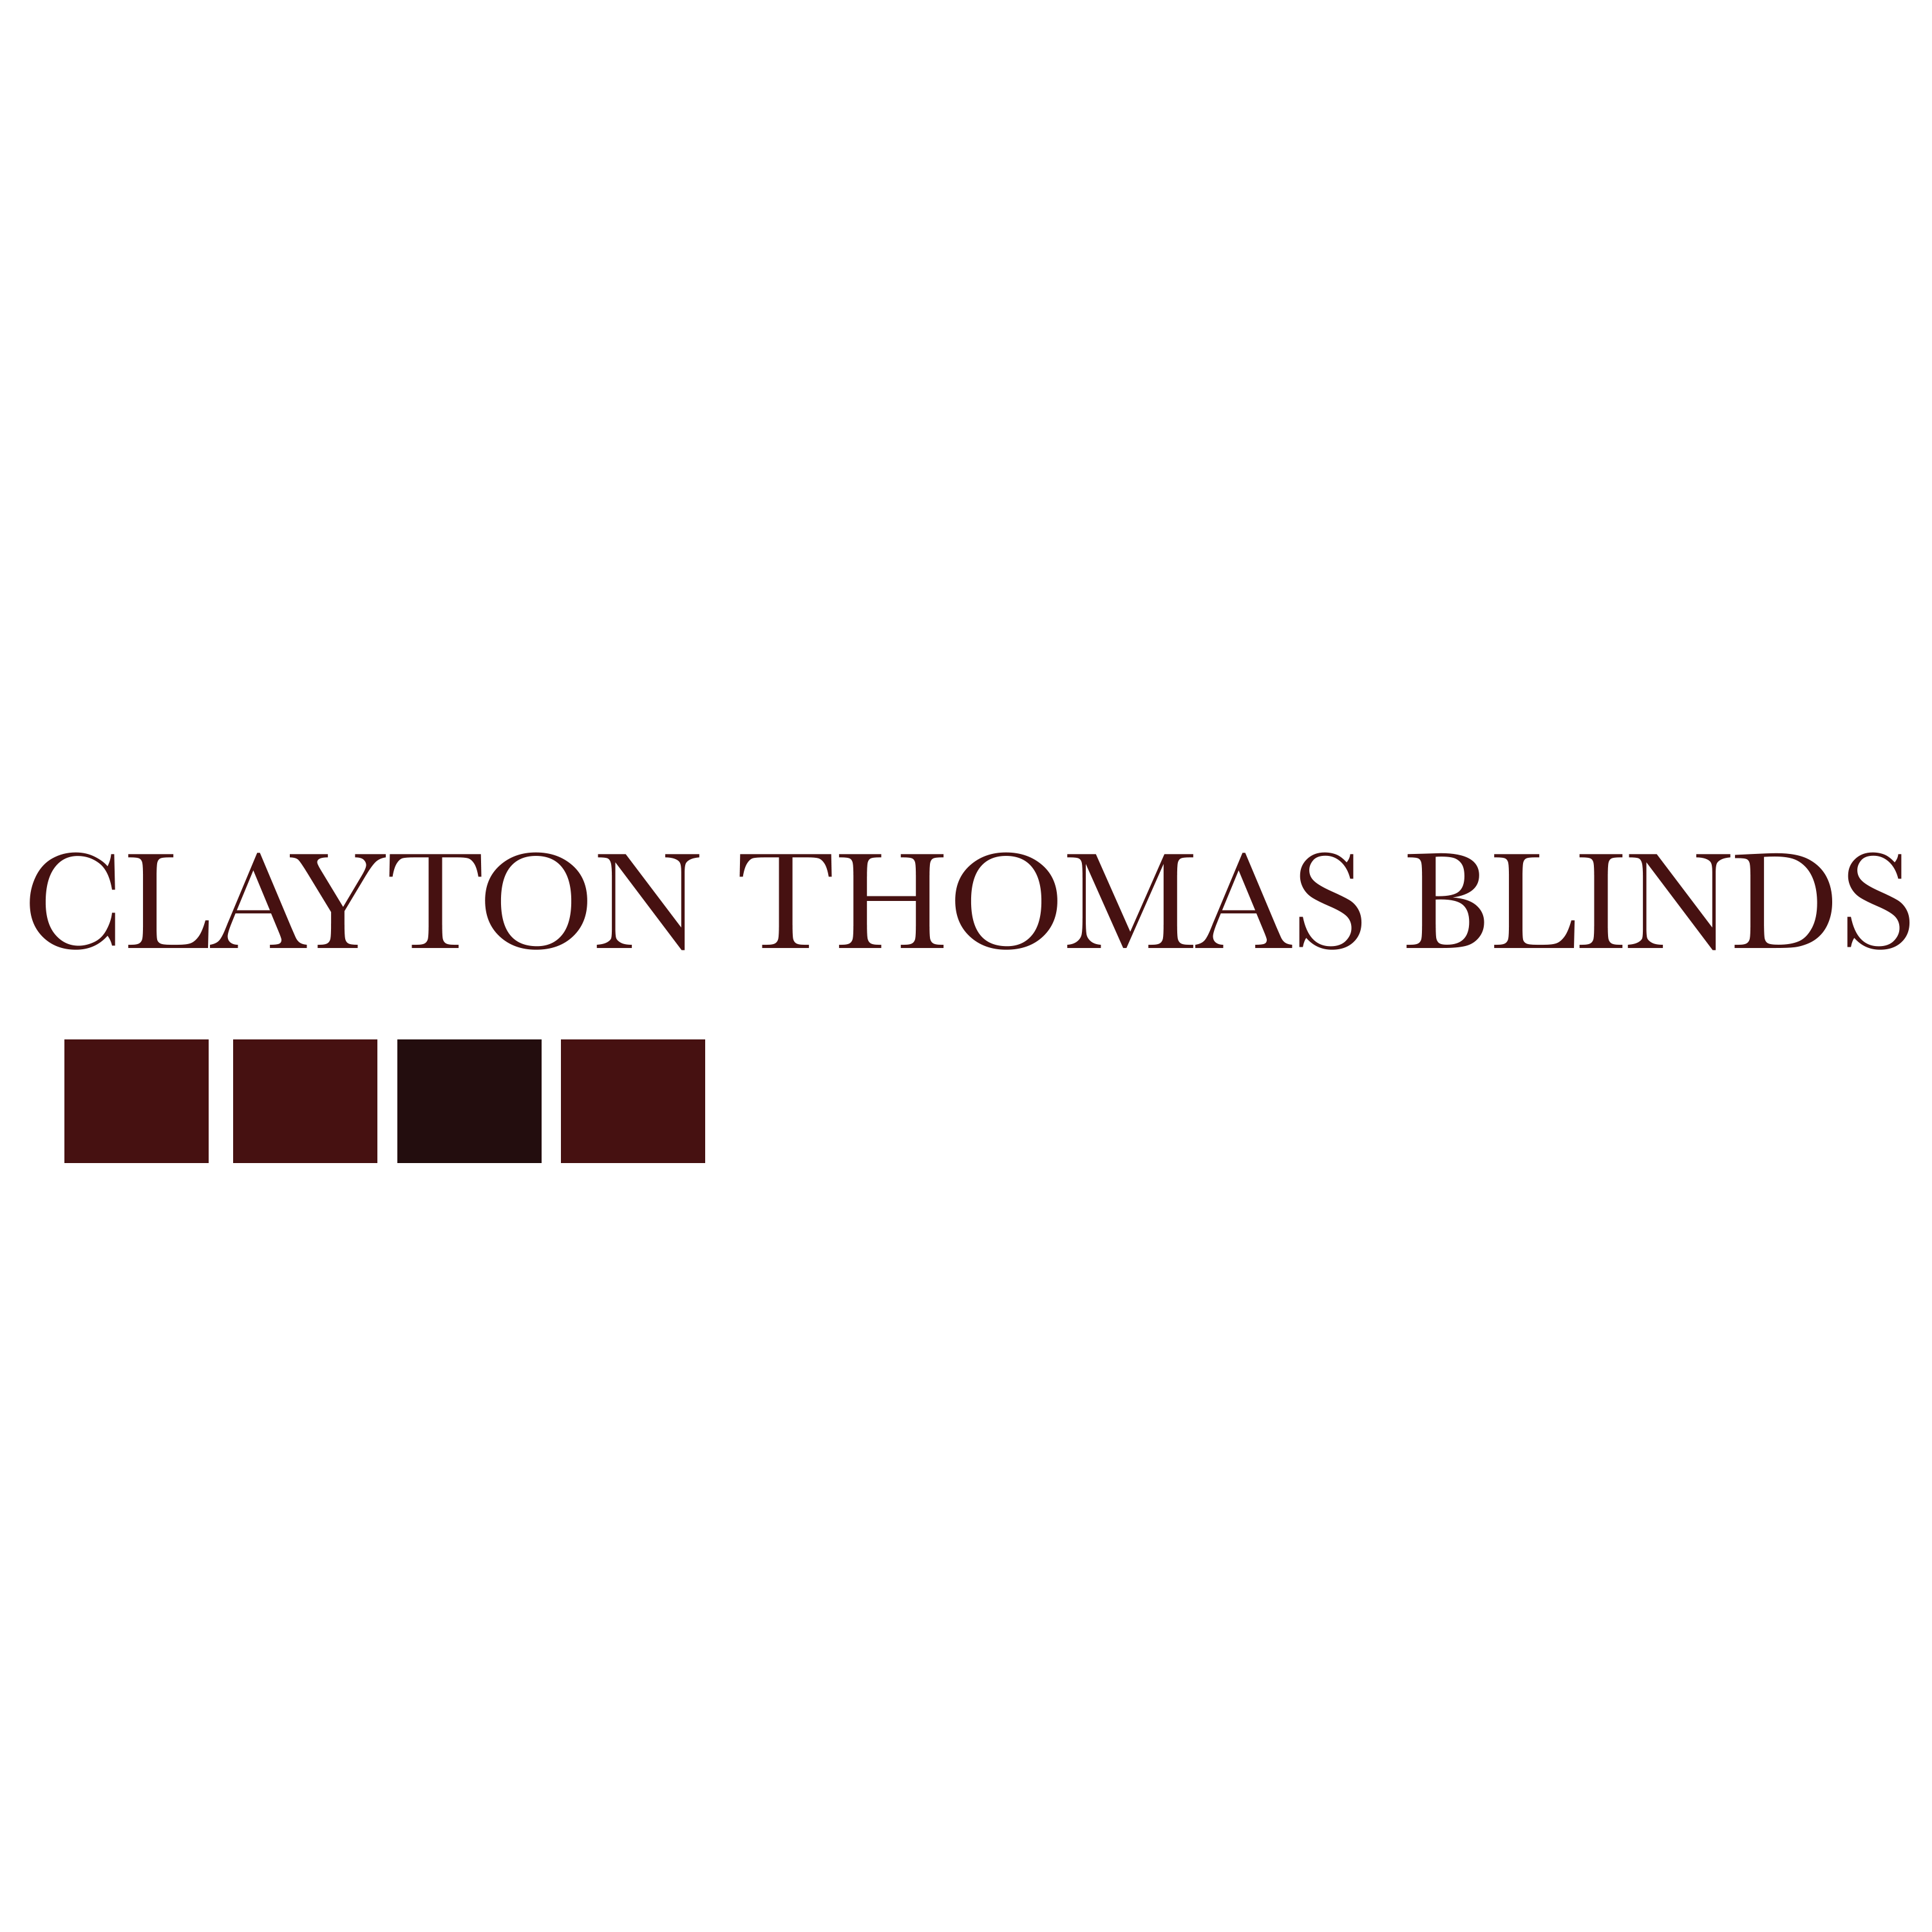 Clayton Thomas Blinds